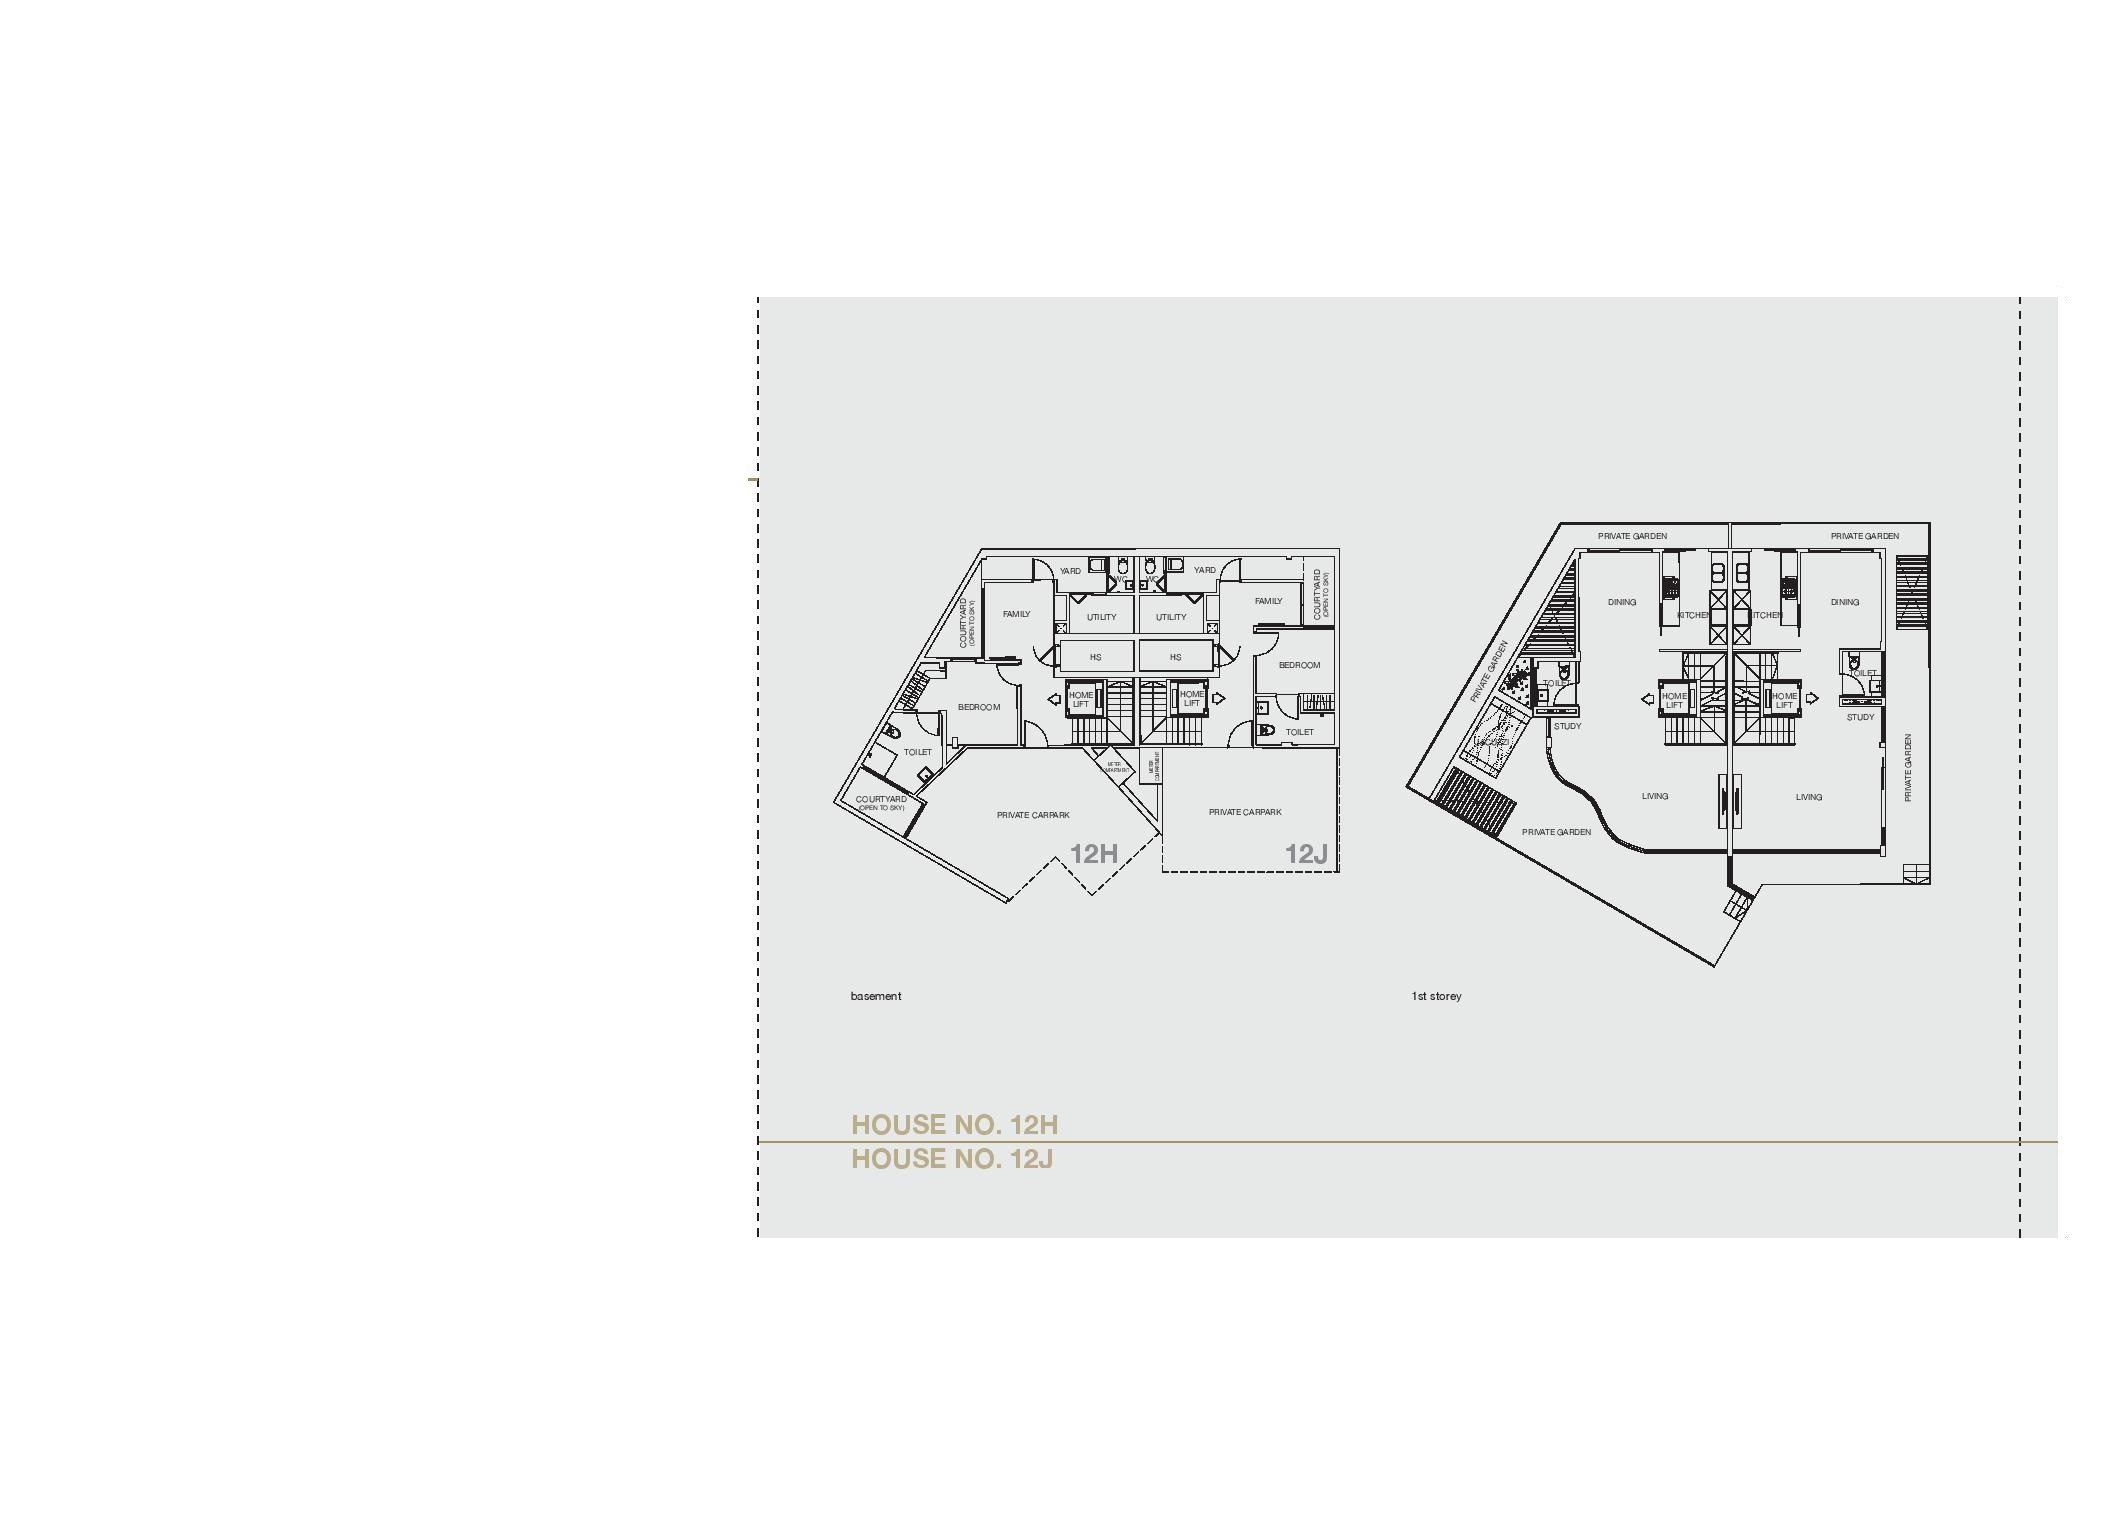 Chancery Hill Villas House 12H/12J Basement & 1st LevelFloor Plans